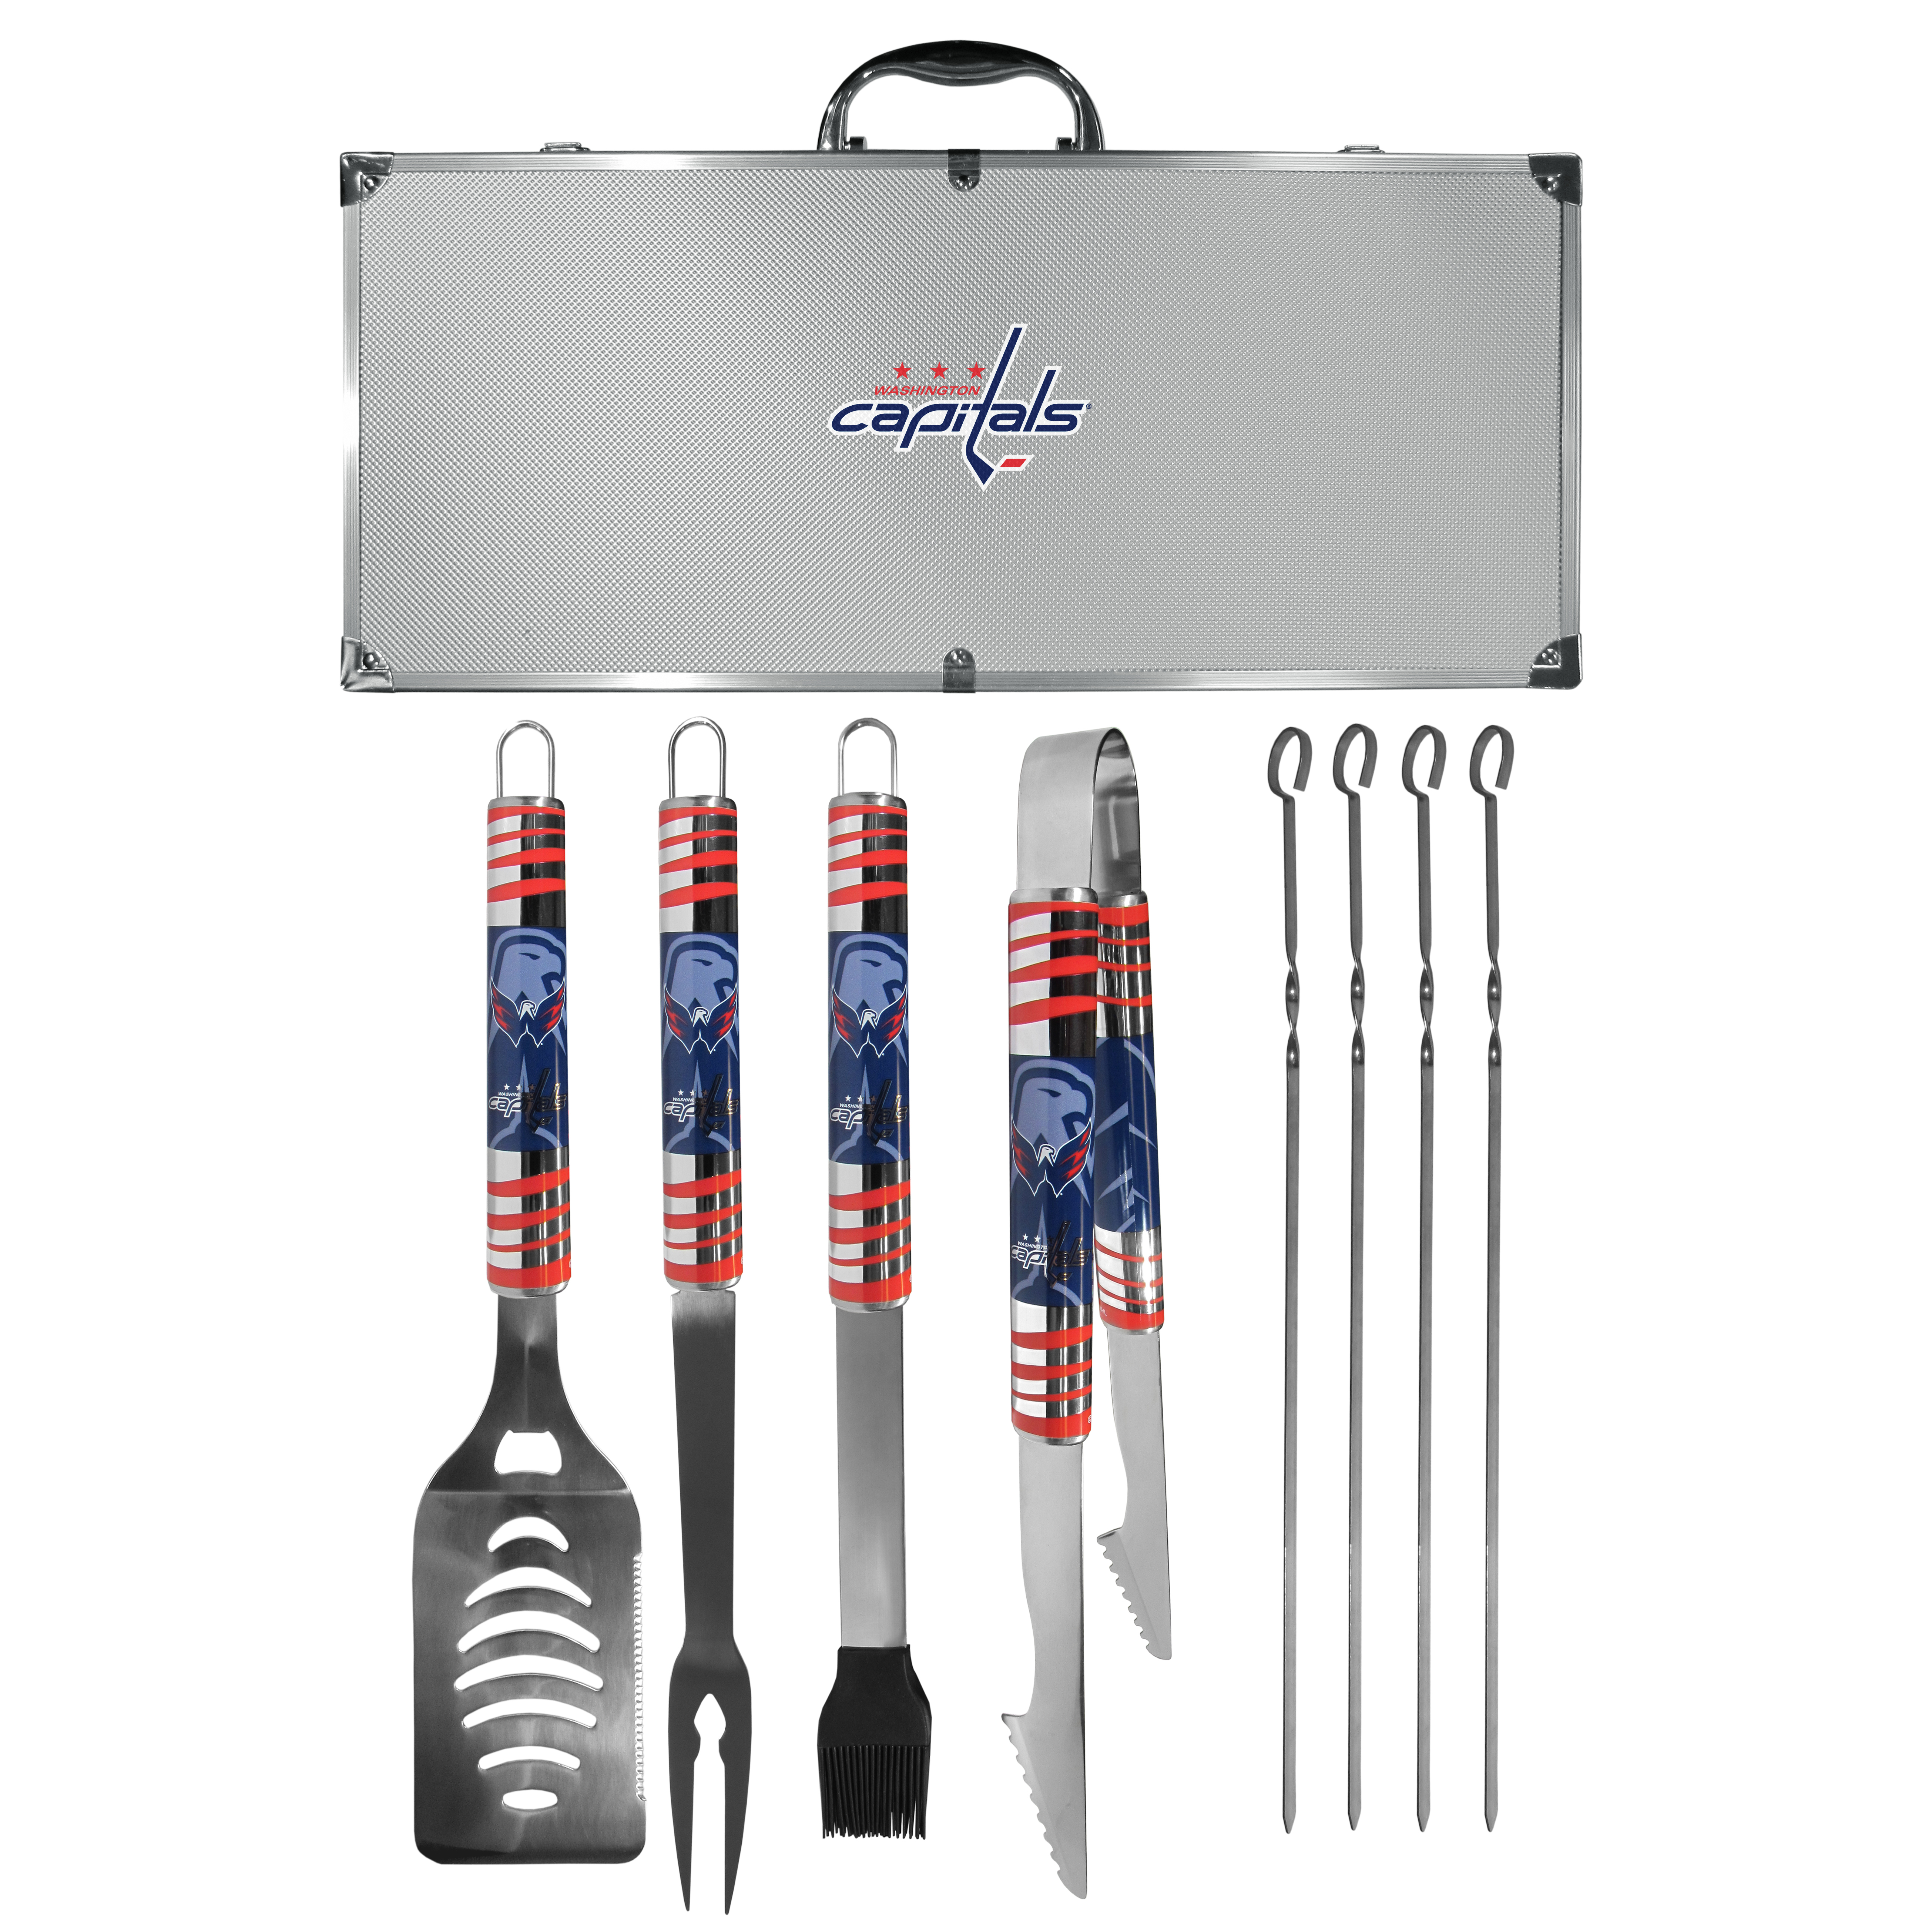 Washington Capitals® 8 pc Tailgater BBQ Set - This is the ultimate Washington Capitals® tailgate accessory! The high quality, 420 grade stainless steel tools are durable and well-made enough to make even the pickiest grill master smile. This complete grill accessory kit includes; 4 skewers, spatula with bottle opener and serrated knife edge, basting brush, tongs and a fork. The 18 inch metal carrying case is perfect for great outdoor use making grilling an ease while camping, tailgating or while having a game day party on your patio. The tools are 17 inches long and feature vivid team graphics. The metal case features a large team emblem with exceptional detail. This high-end men's gift is sure to be a hit as a present on Father's Day or Christmas.